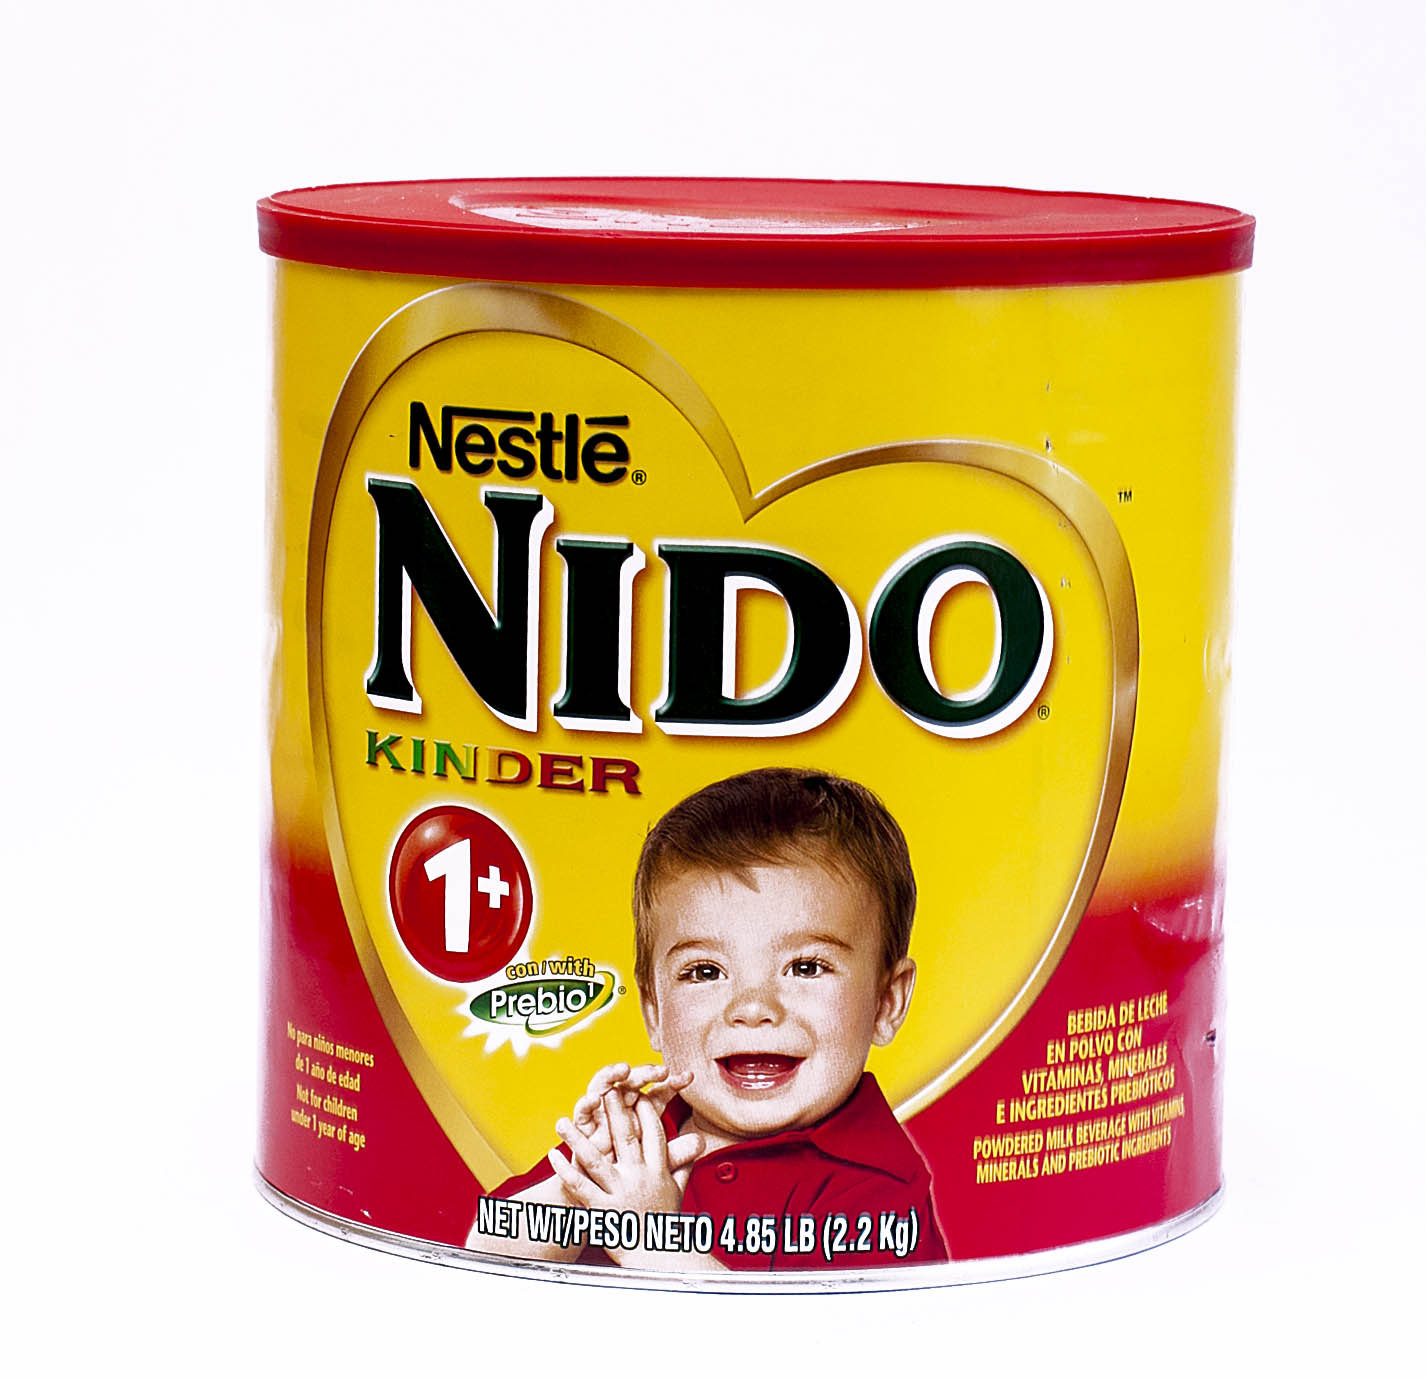 Nestle NIDO Kinder Powdered Milk Beverage